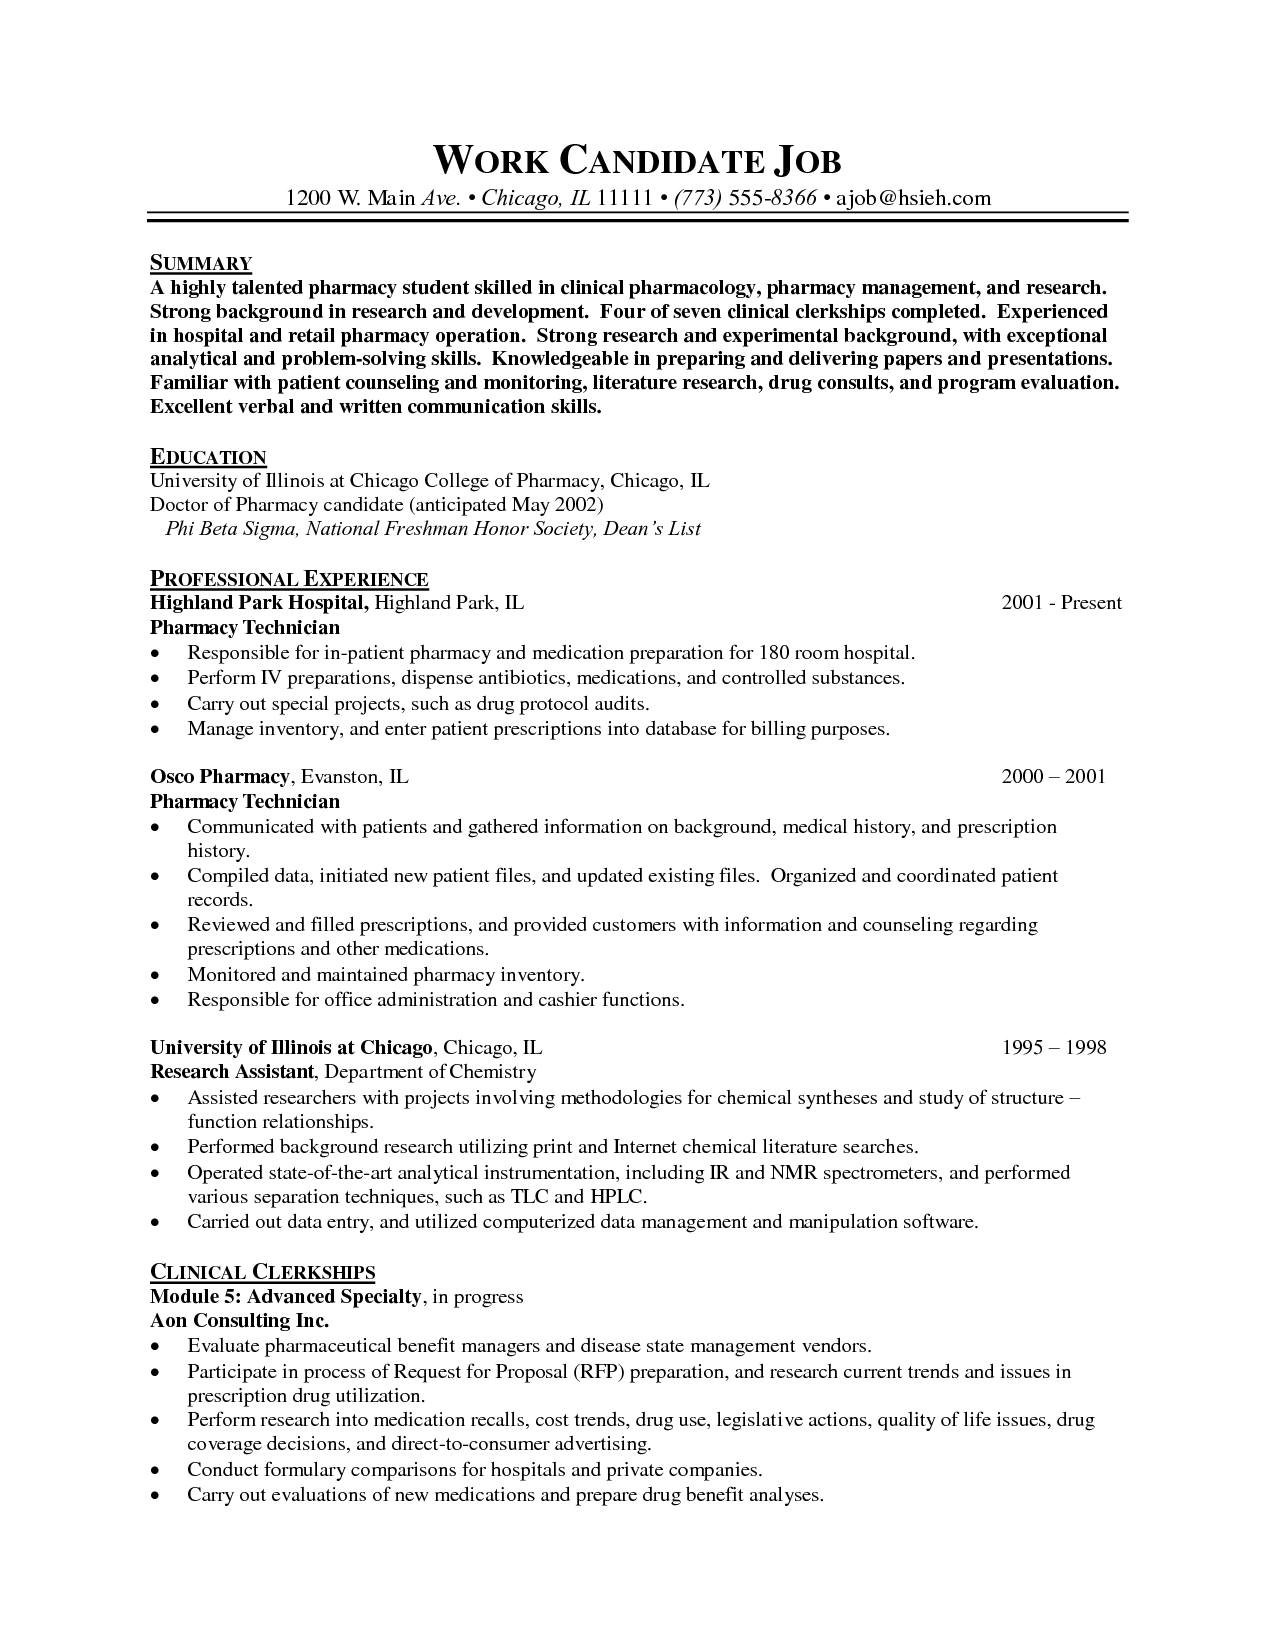 Professional Resume Cover Letter Sample | Get Instant, Risk Free, Access To  The Full Version Now!